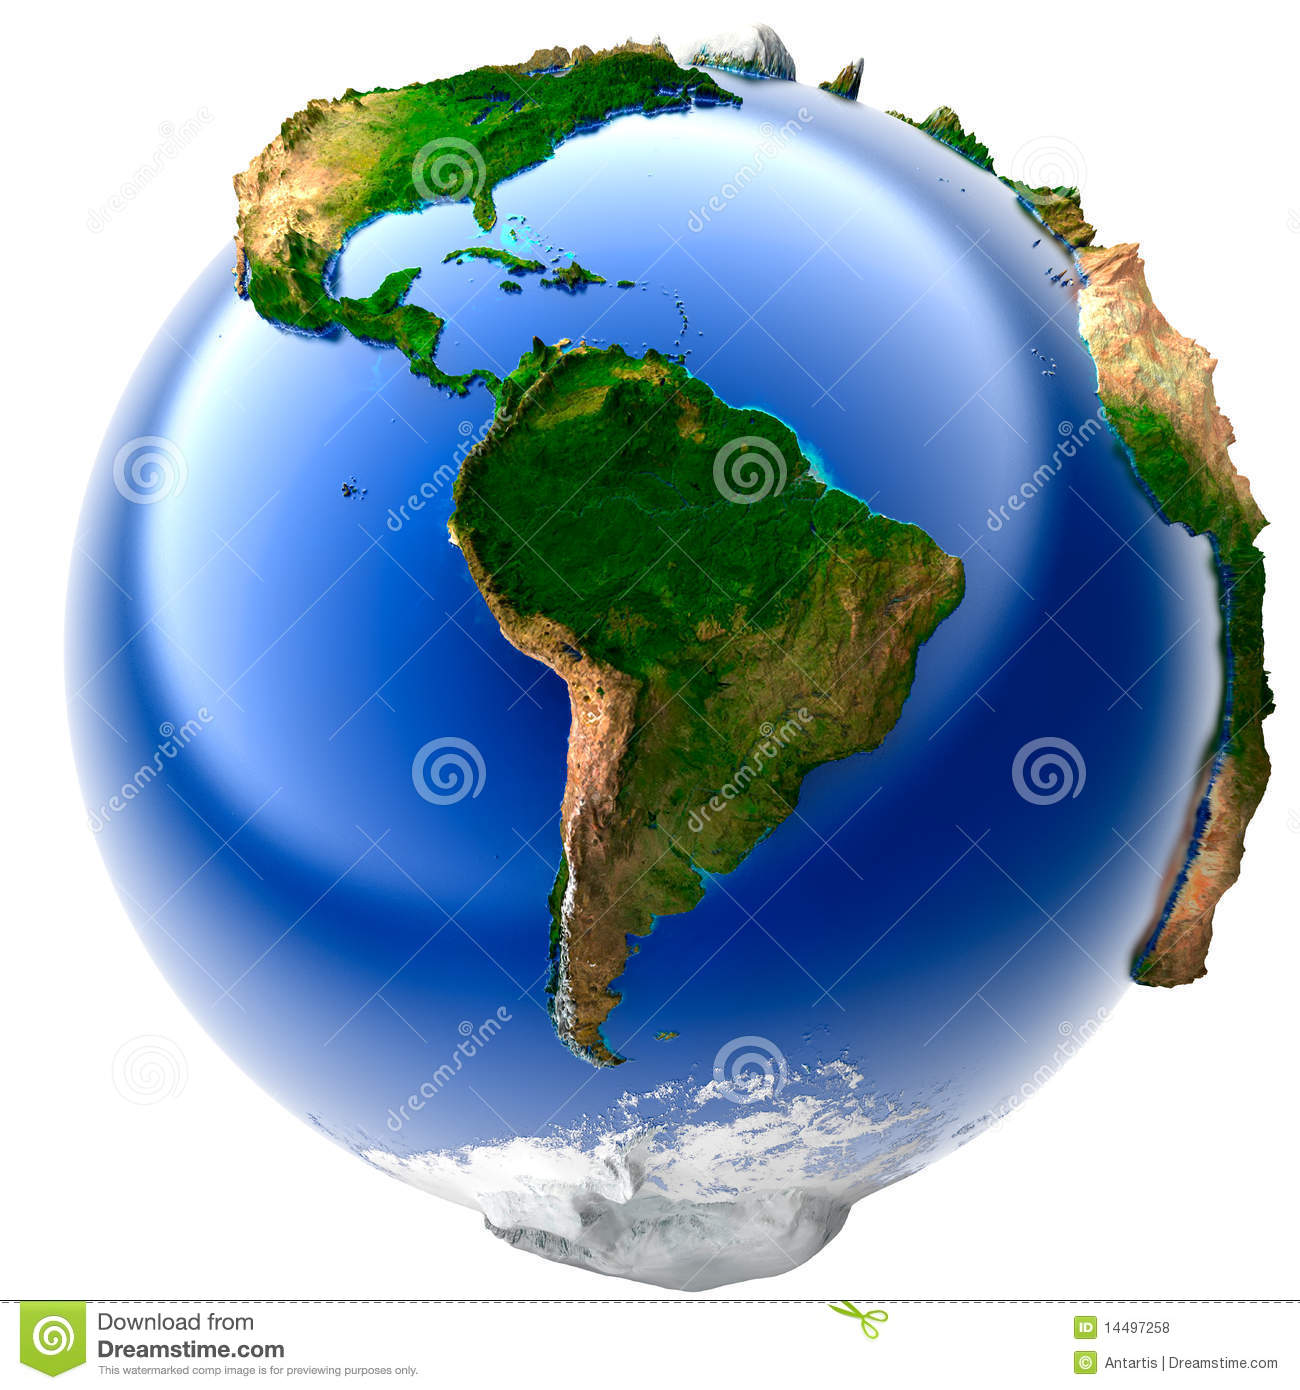 Miniature real earth stock illustration illustration of mexico download comp gumiabroncs Gallery